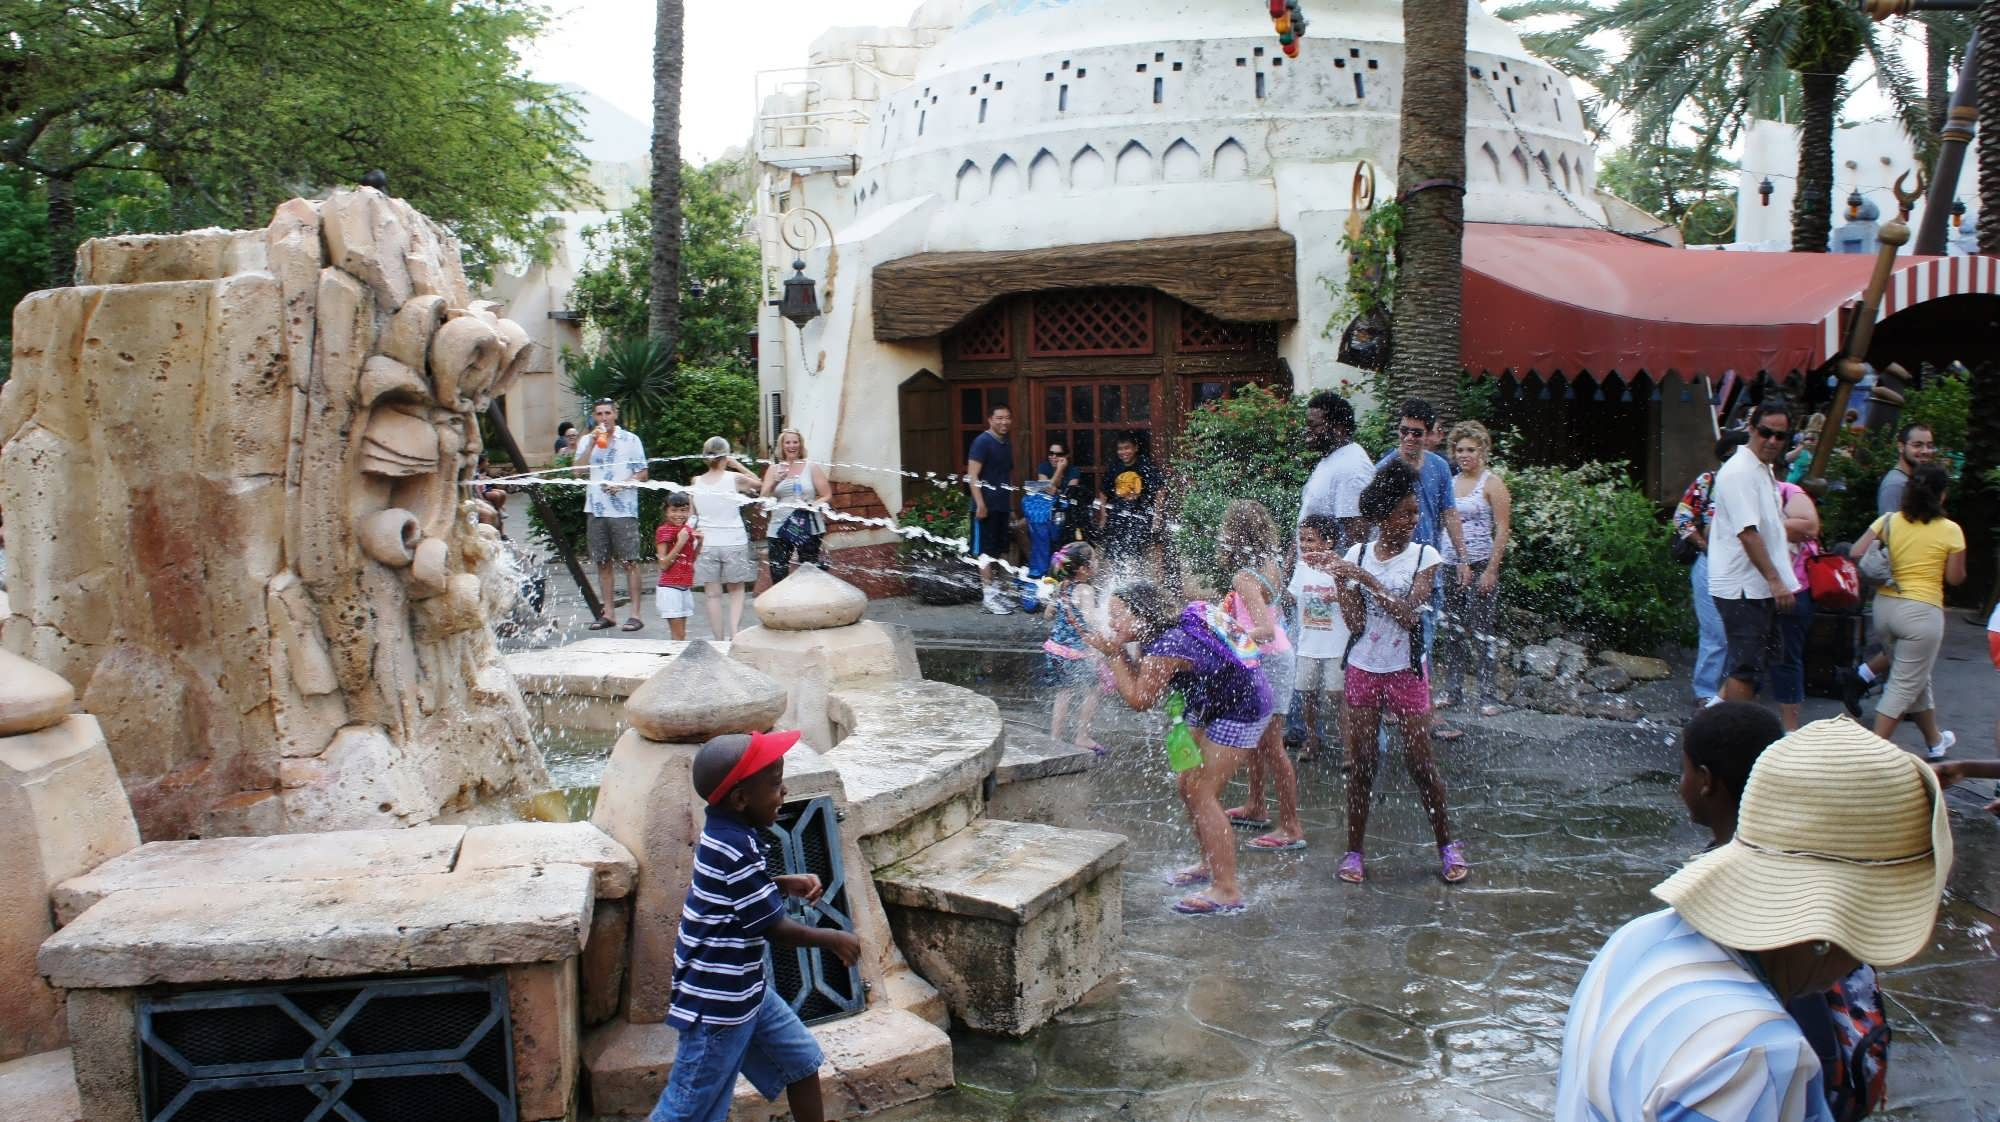 Mystic Fountain at Islands of Adventure